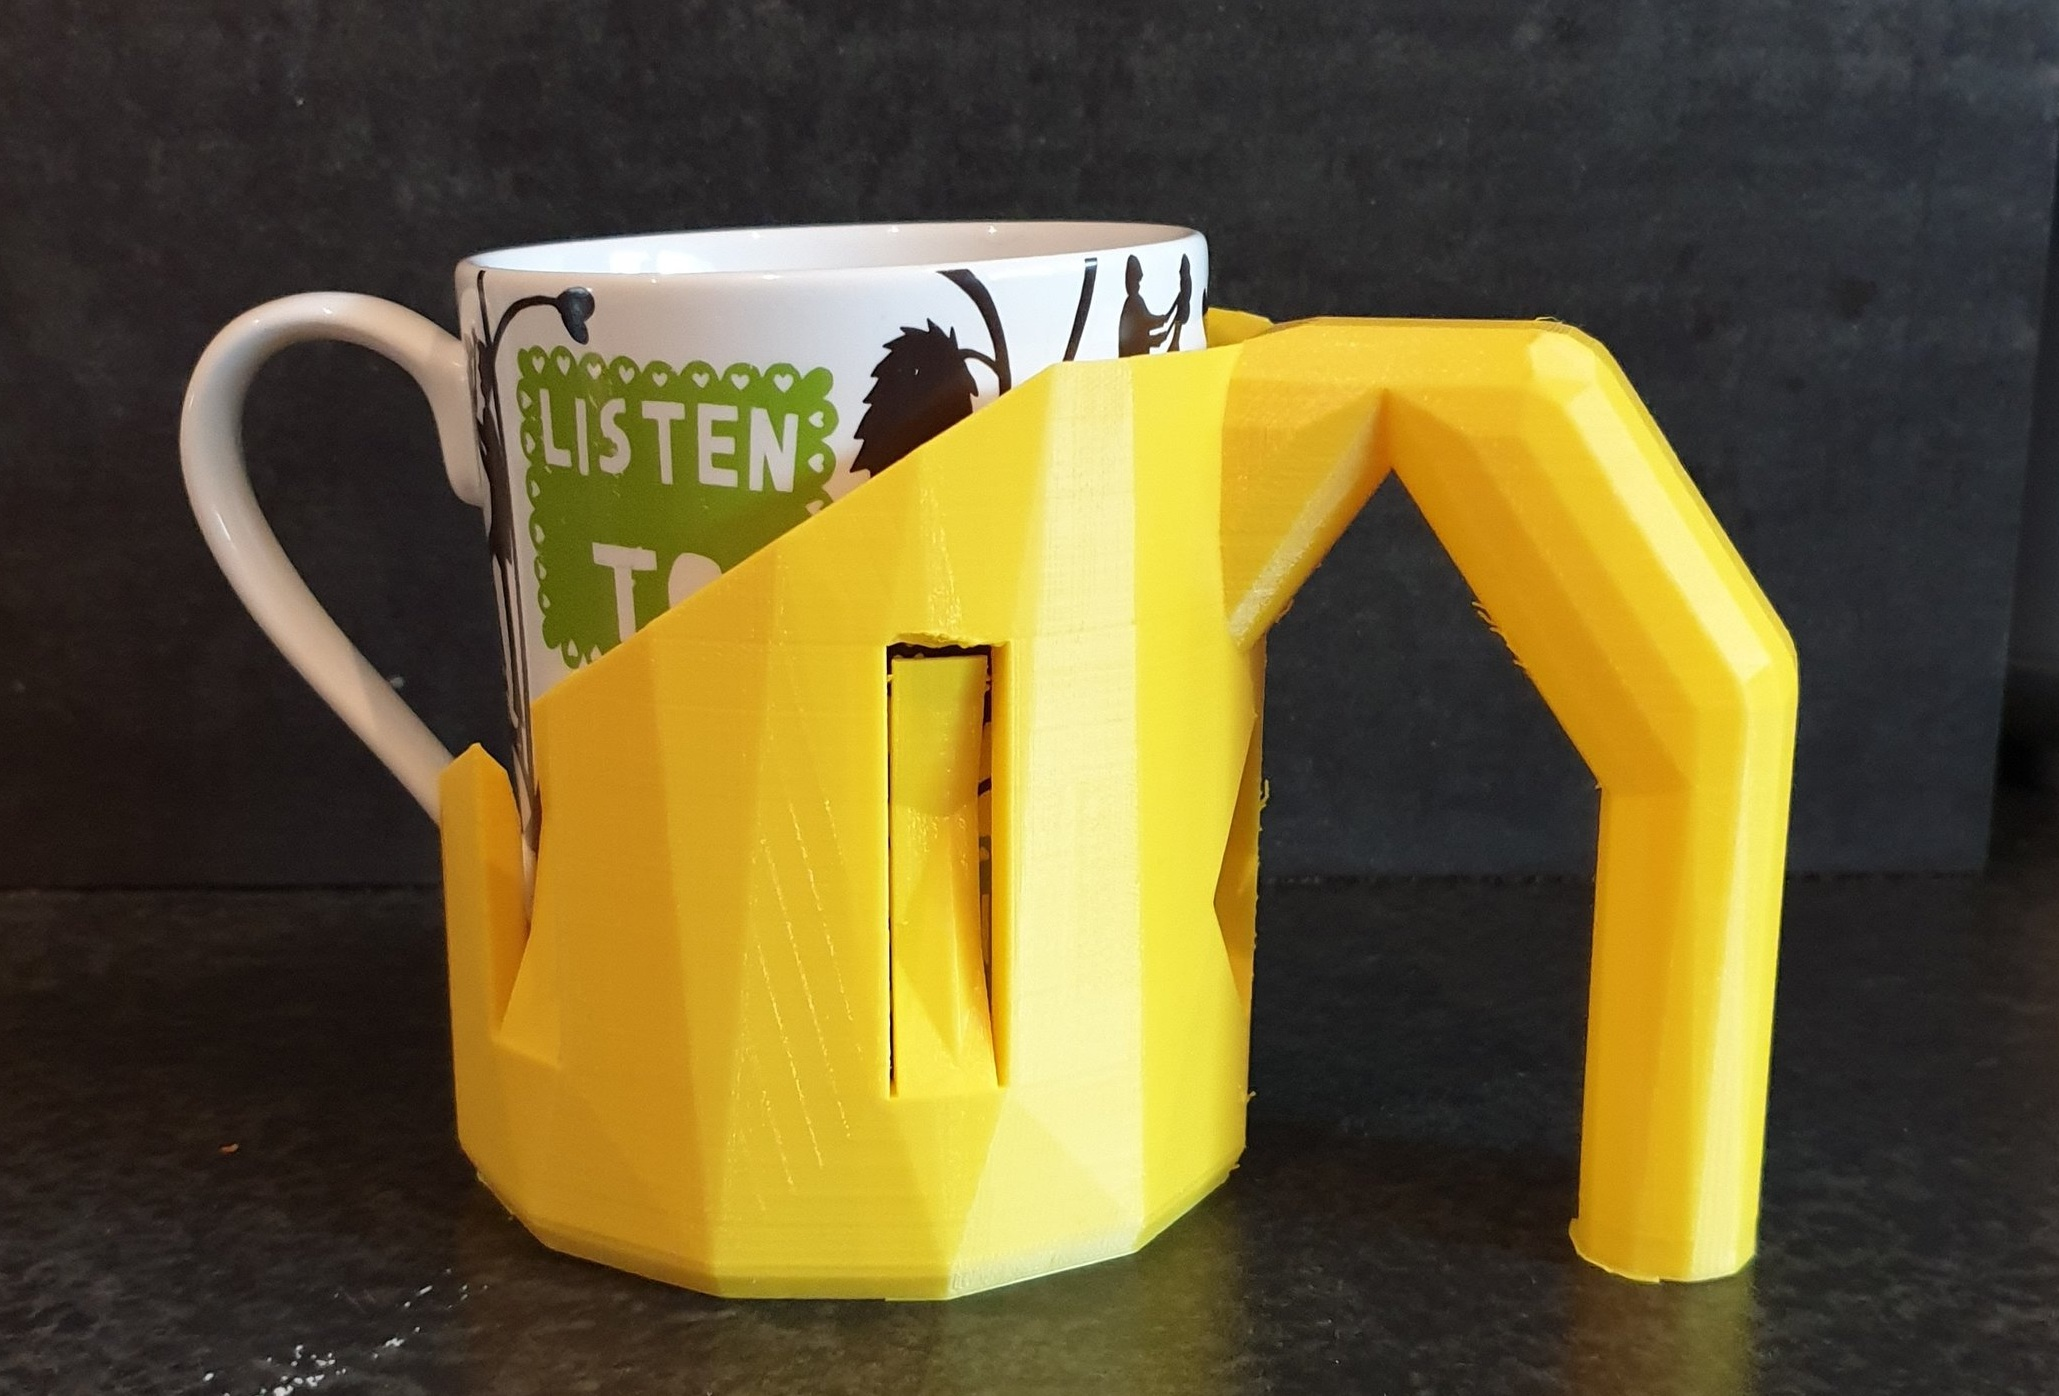 Mug Handle - This handle allows people with decreased fine motor function to continue using their collection of mugs by providing a chunky easy to grasp handle. Printing at a cost of approximately €8 this handle is far cheaper than the commercial equivalent that costs €22. The shared model is for mugs of 79 to 85mm diameter (most common sizes) but can easily be scaled to meet any requirements.